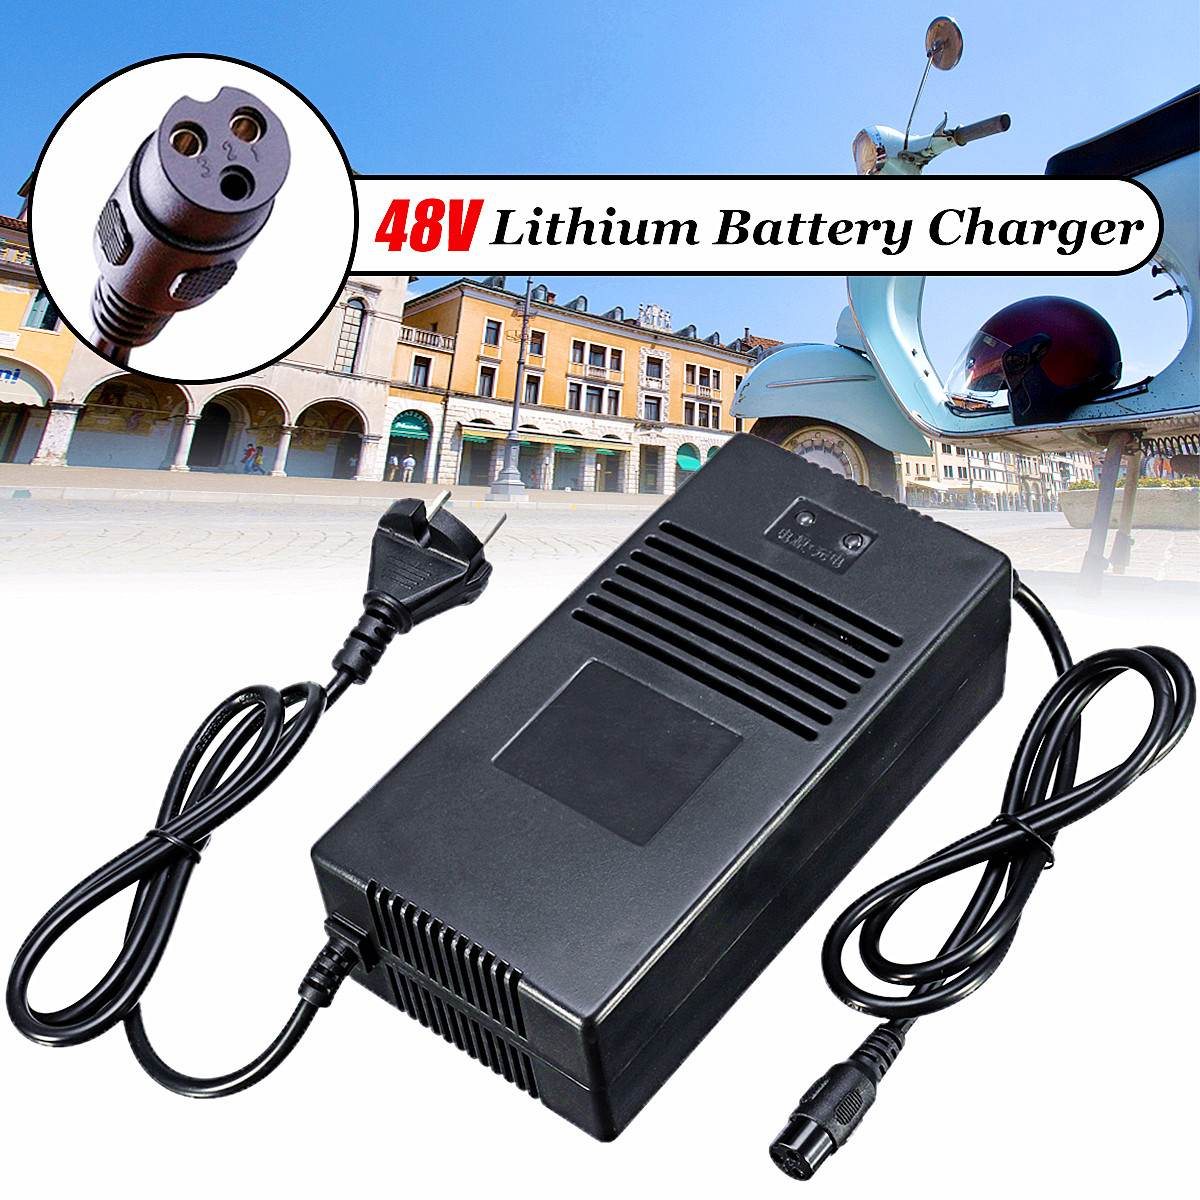 54 6V 4A Smart Lithium Battery Charger For 48V Lipo Li ion Electric Bike Scooter Power